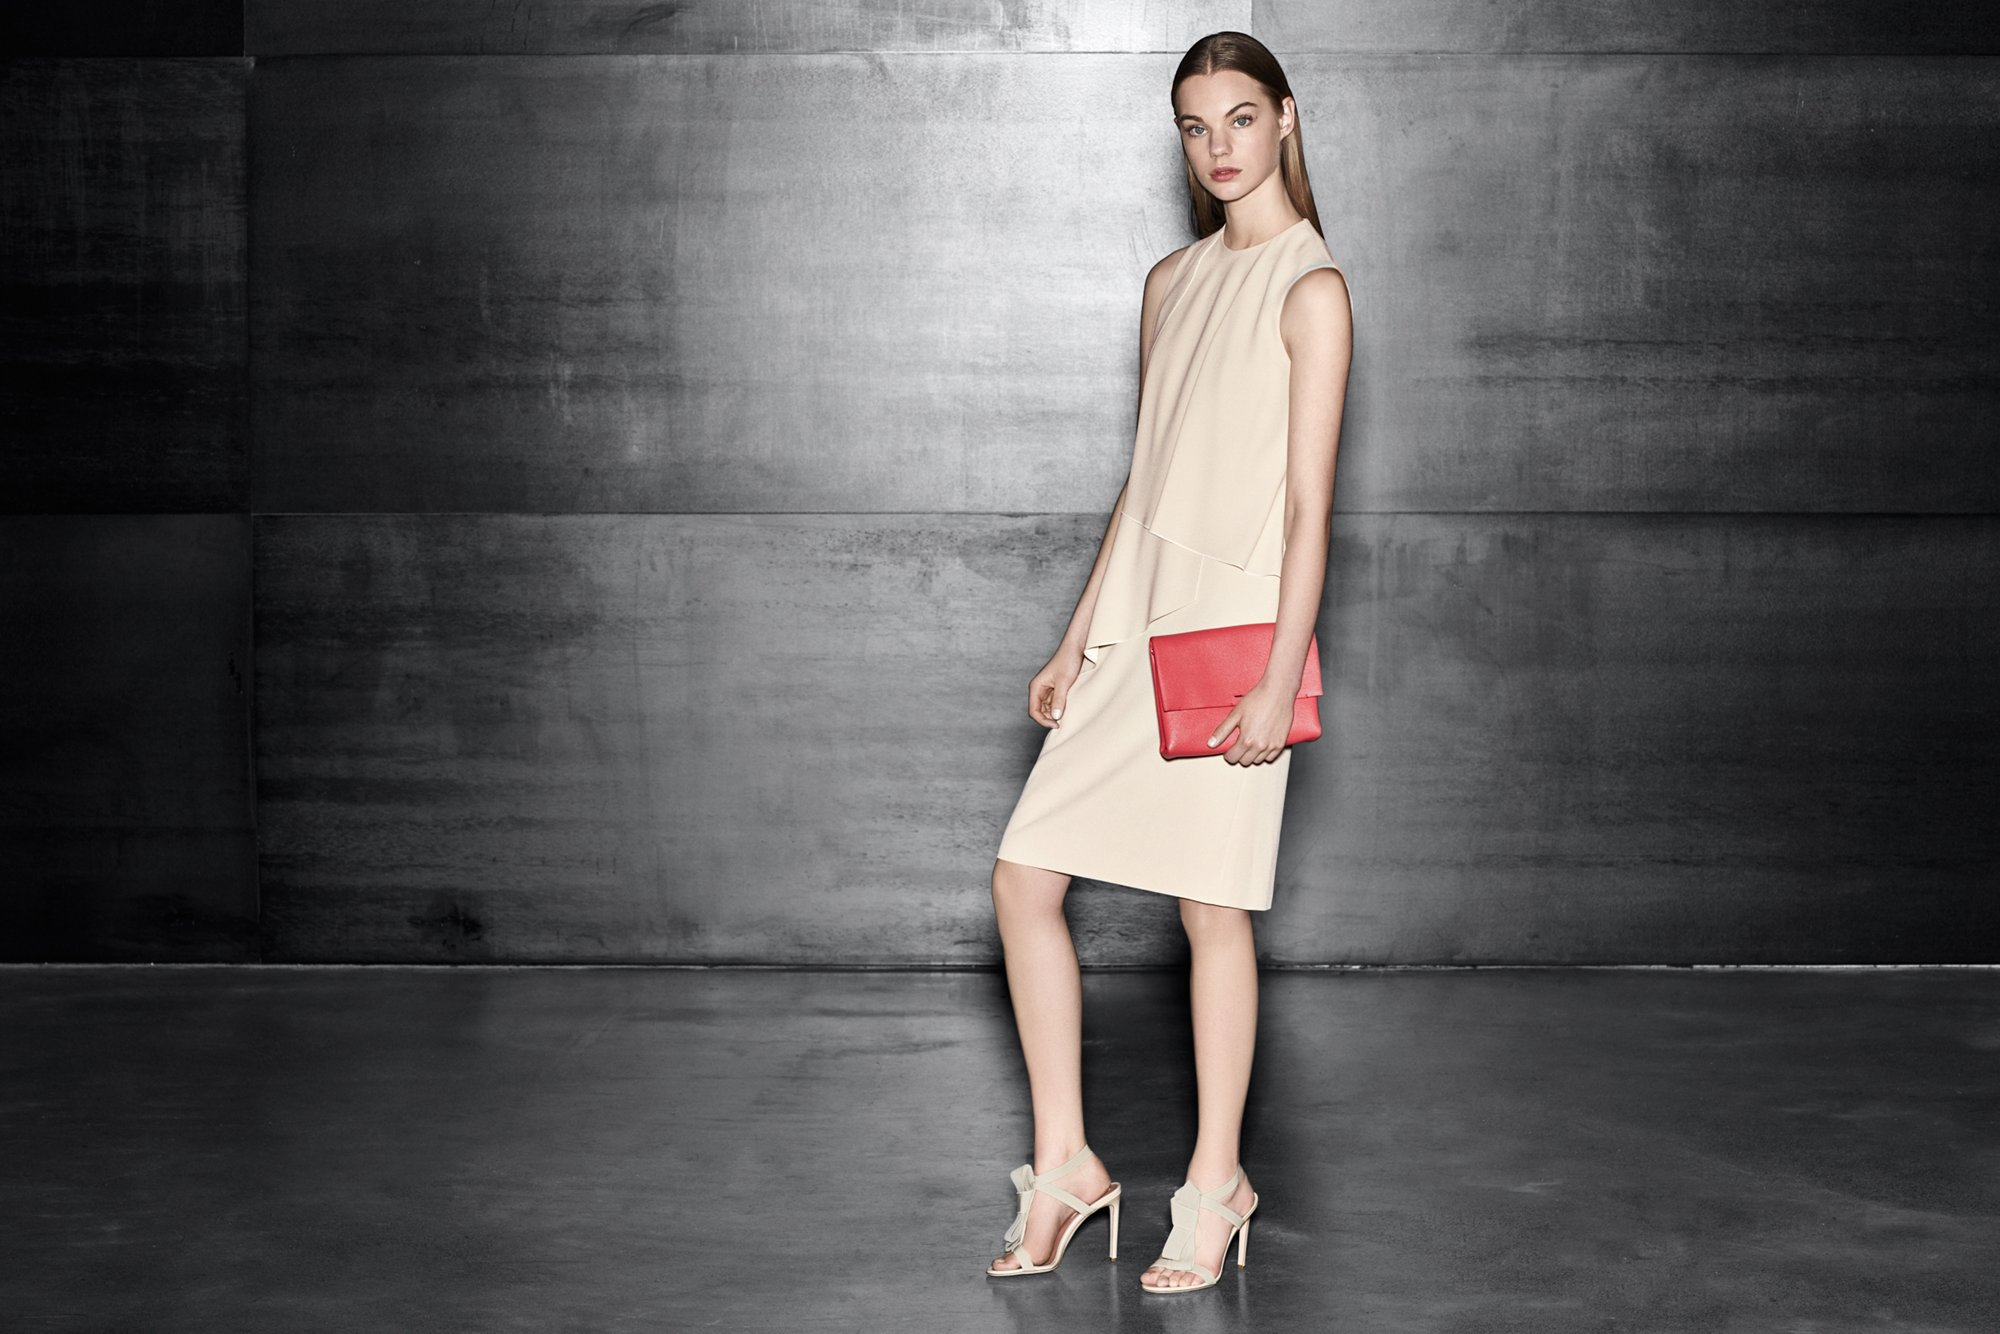 Beige dress with dark pink bag and beige shoes by BOSS